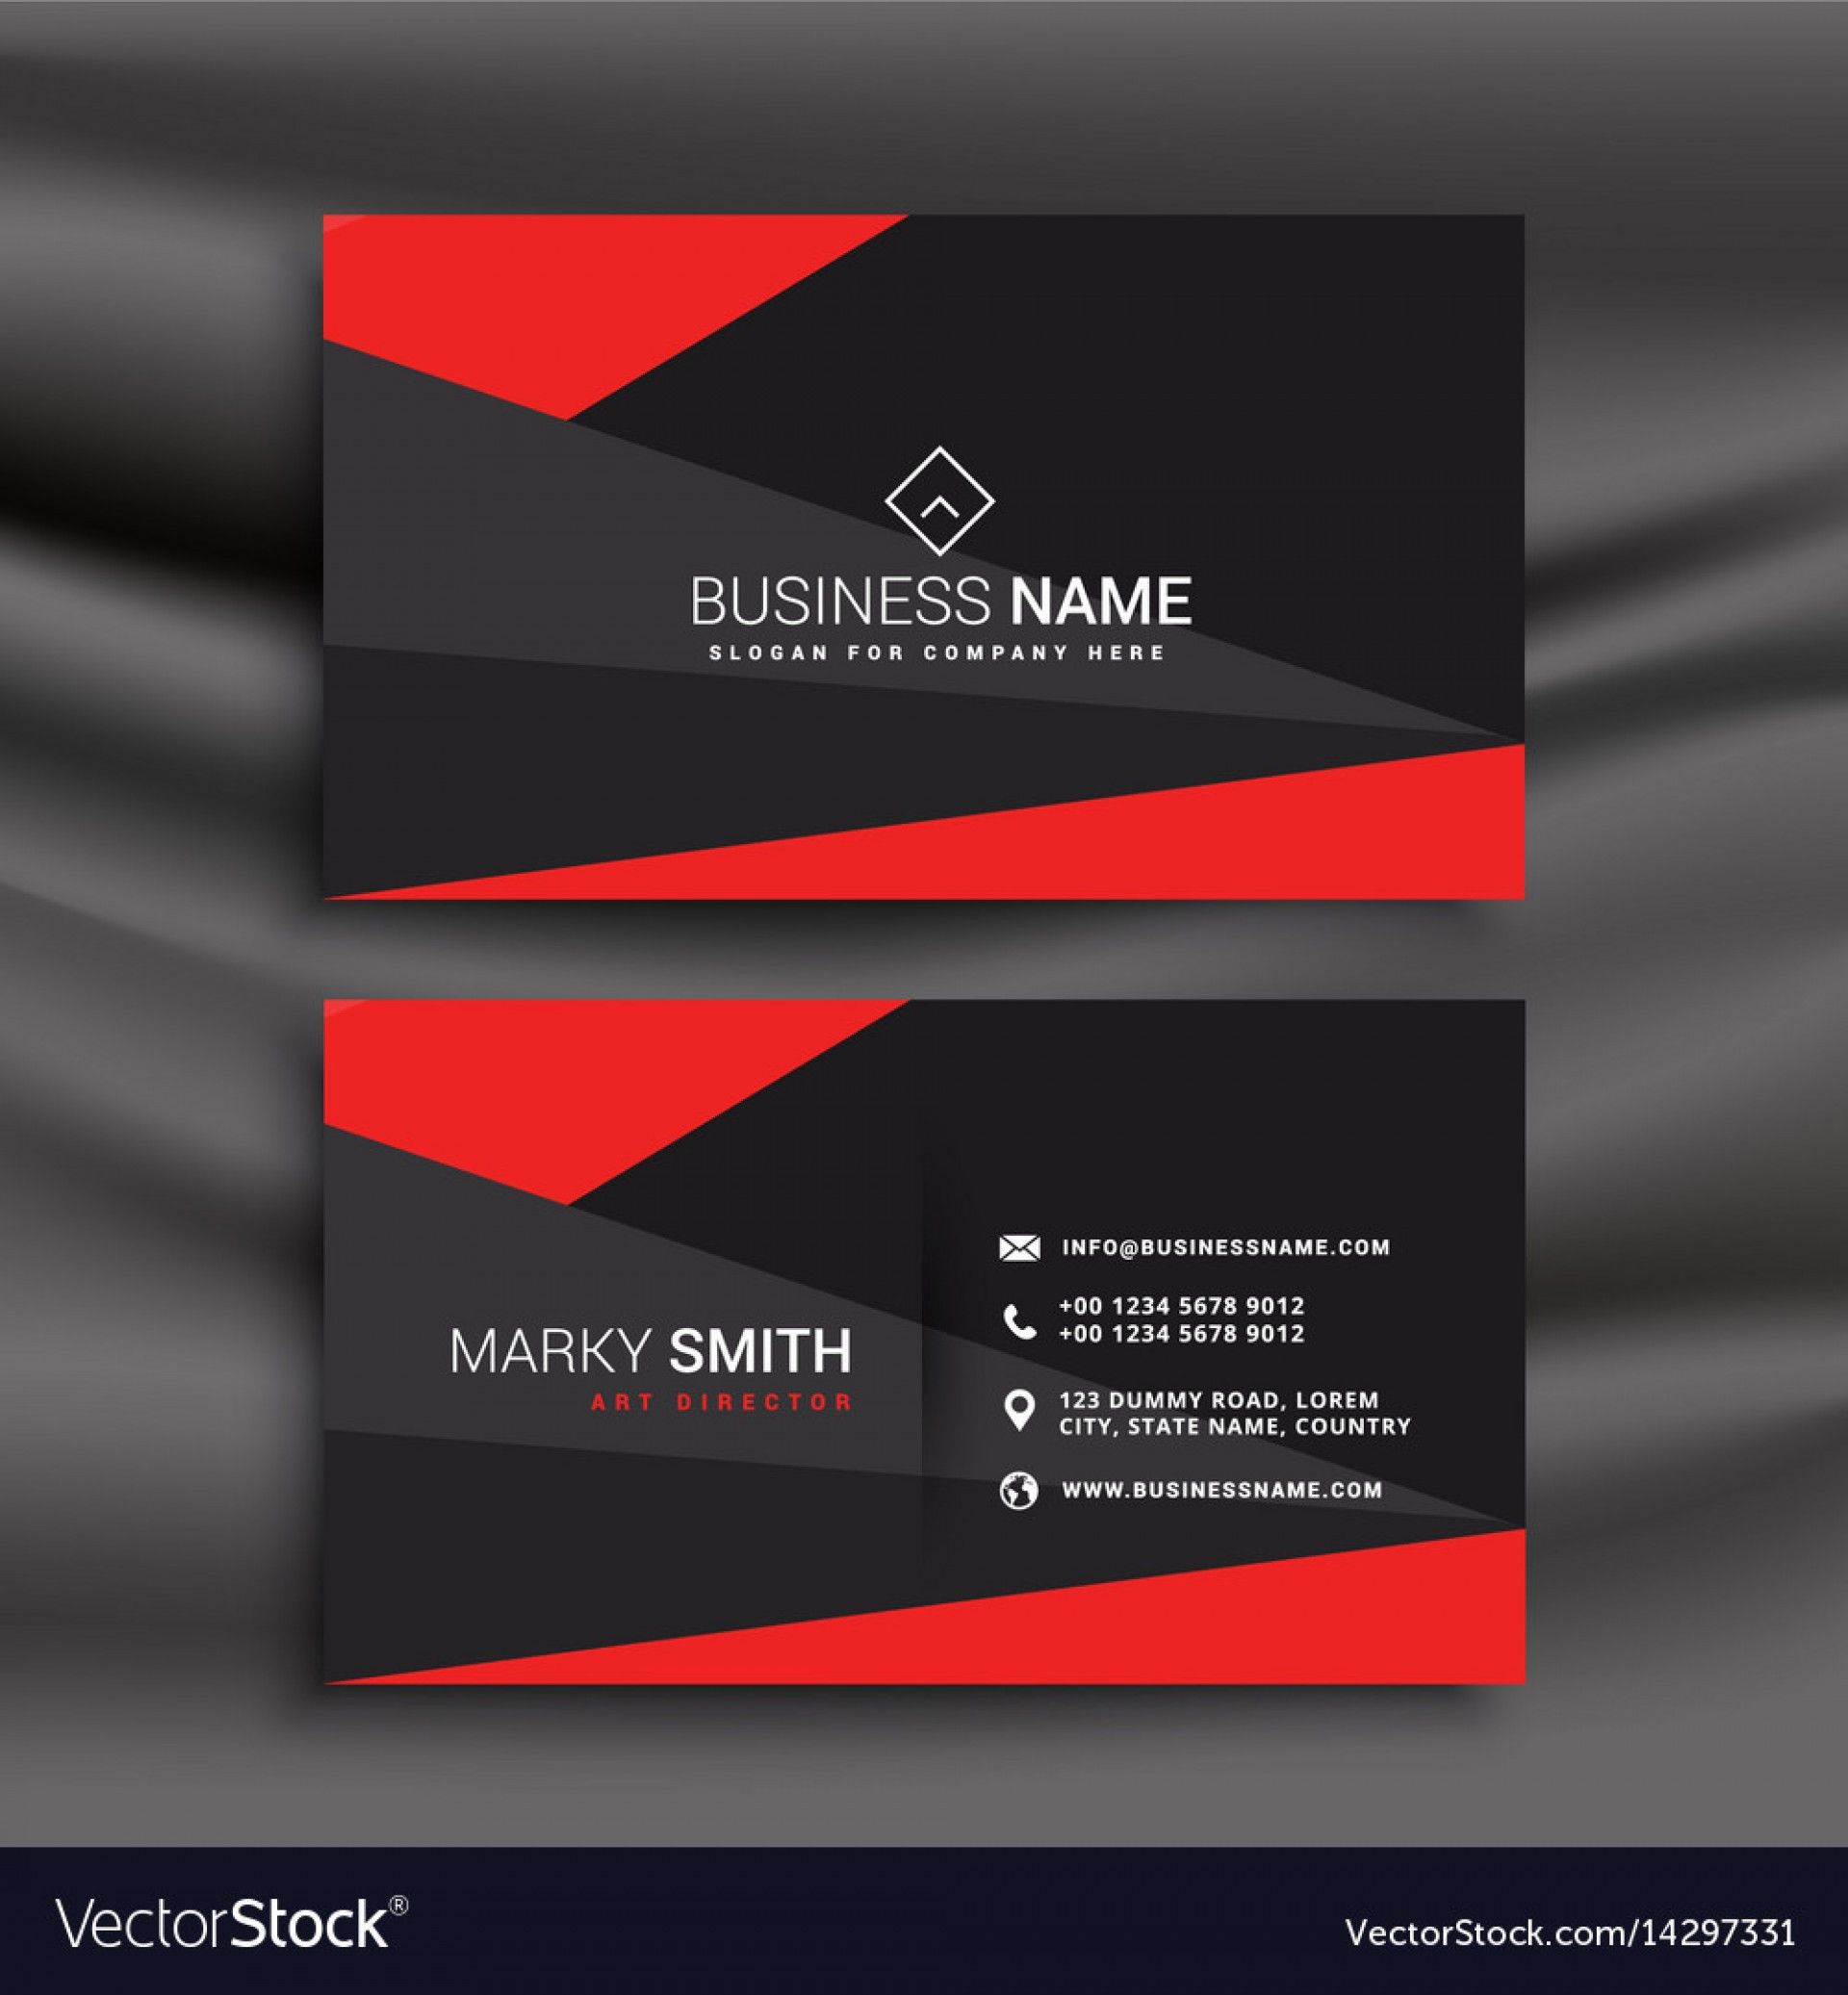 Avery Template 8371 Business Card 11 Design For 2020 Business Card Template Word Free Business Card Templates Avery Business Cards